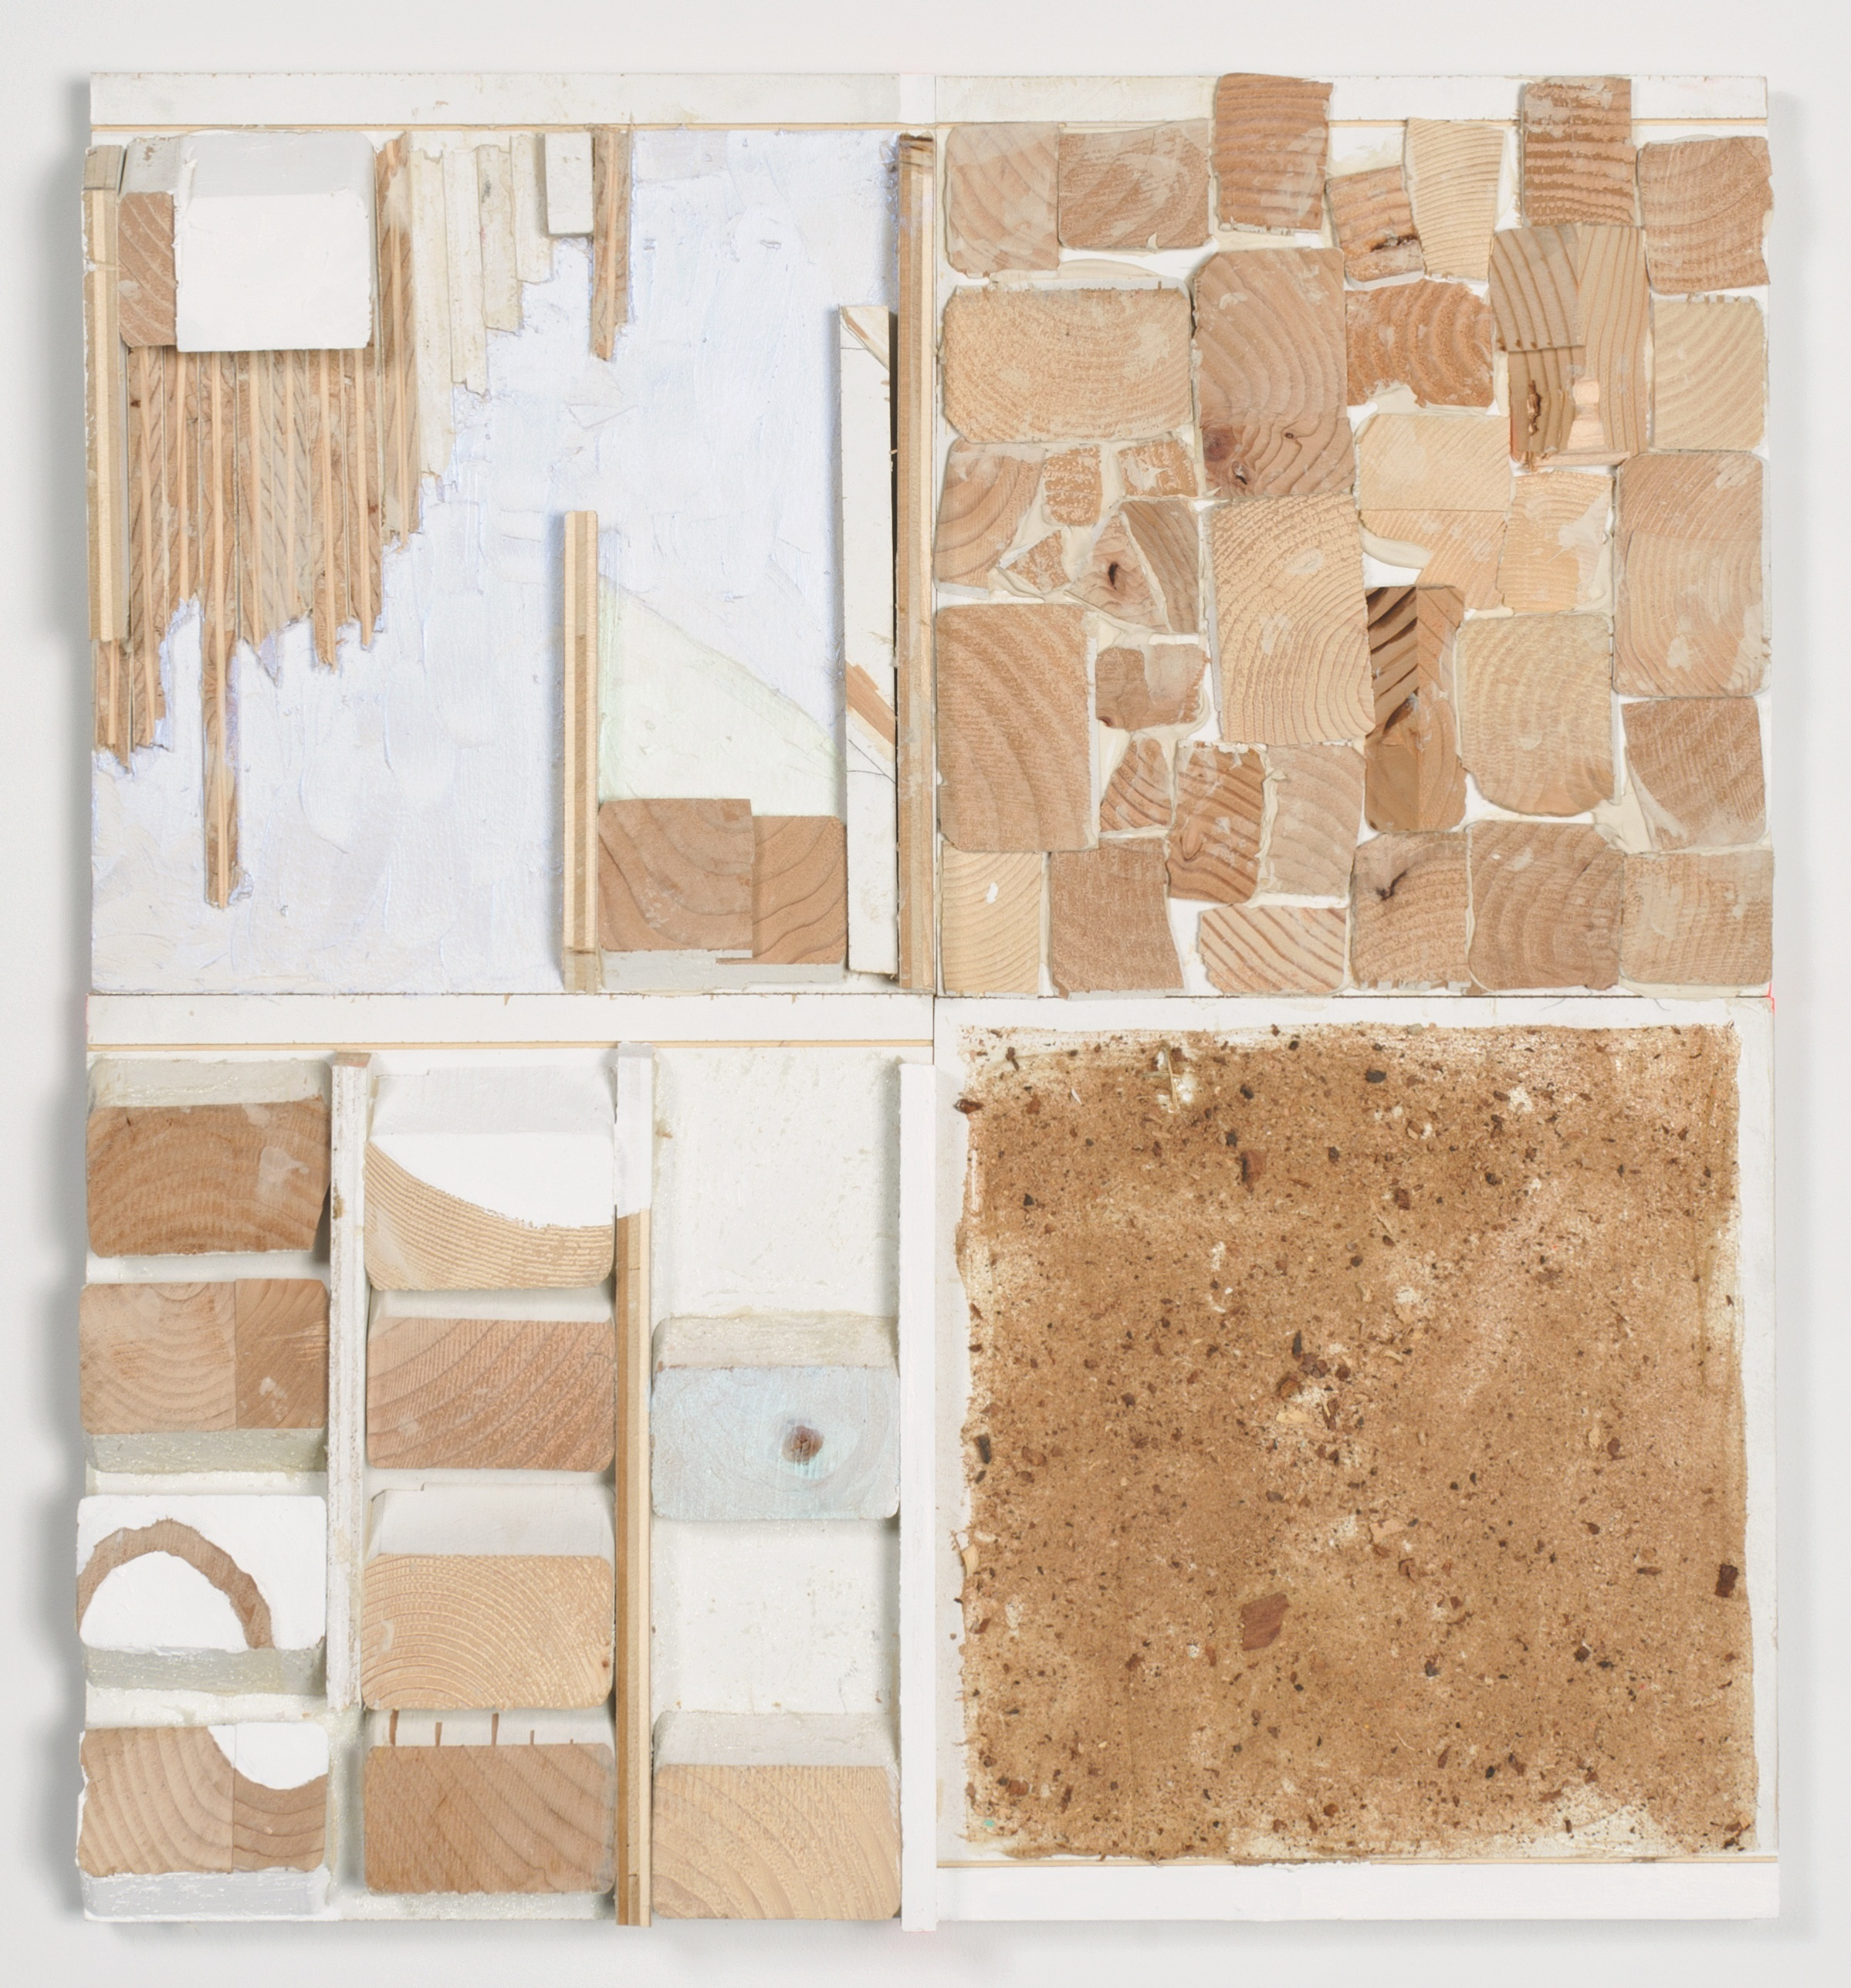 Thought Boxes , 2015  Acrylic, enamel, and sawdust on wood  26 1/4 x 24 x 2 inches